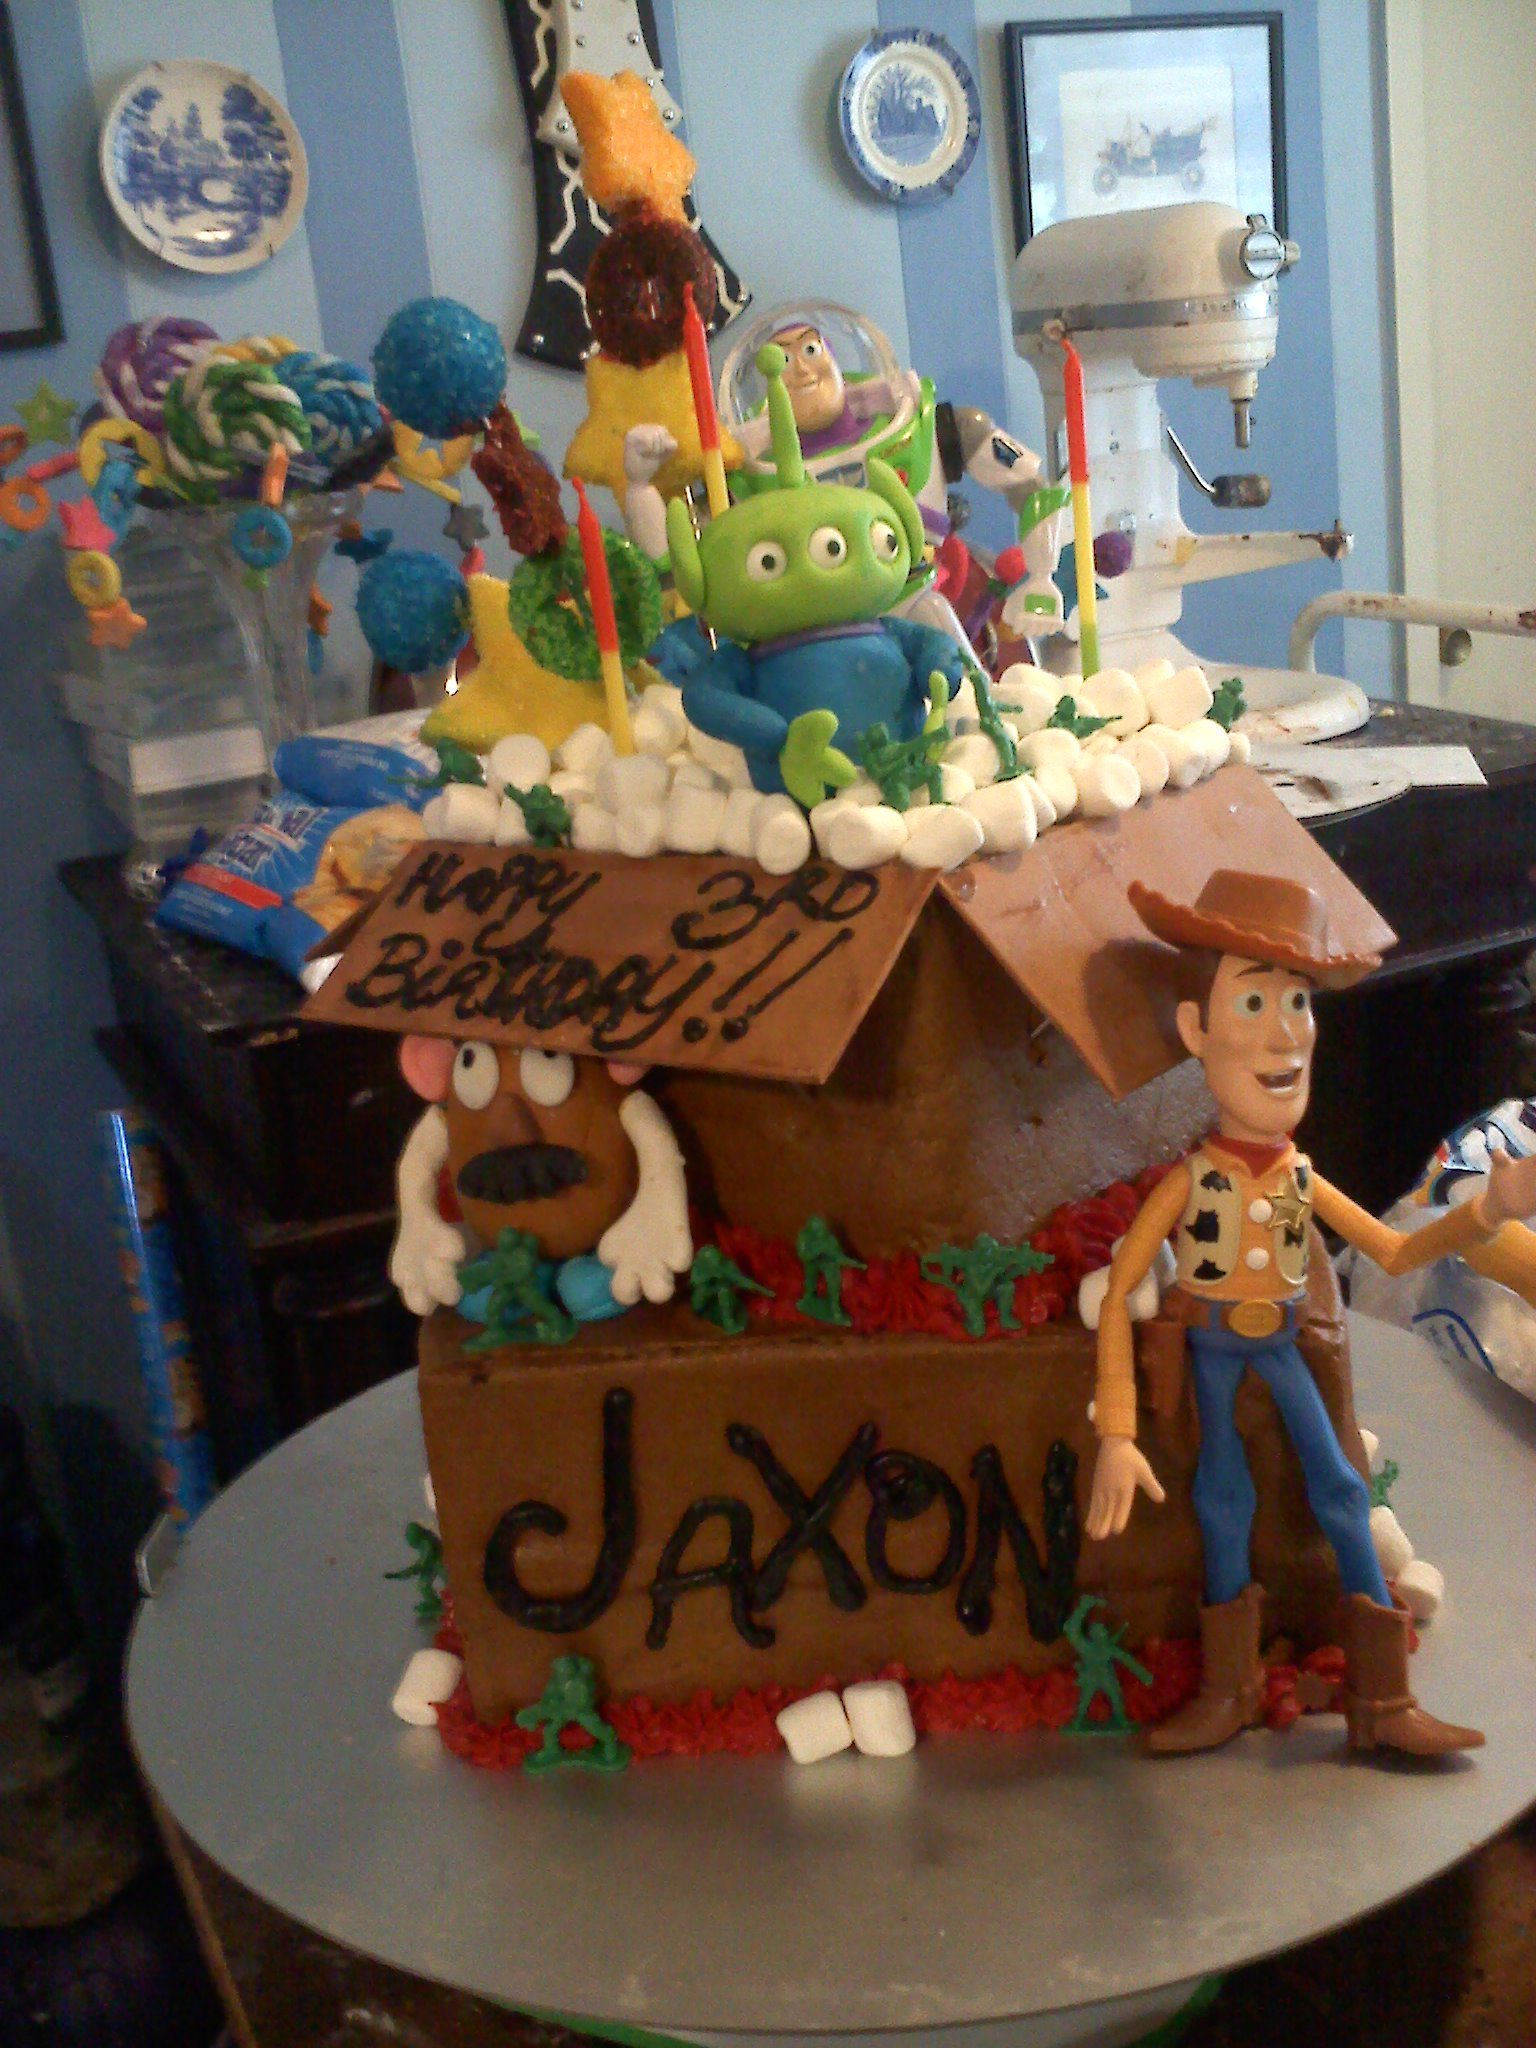 Toy Story 3 Toy story 3, Gingerbread, Gingerbread house